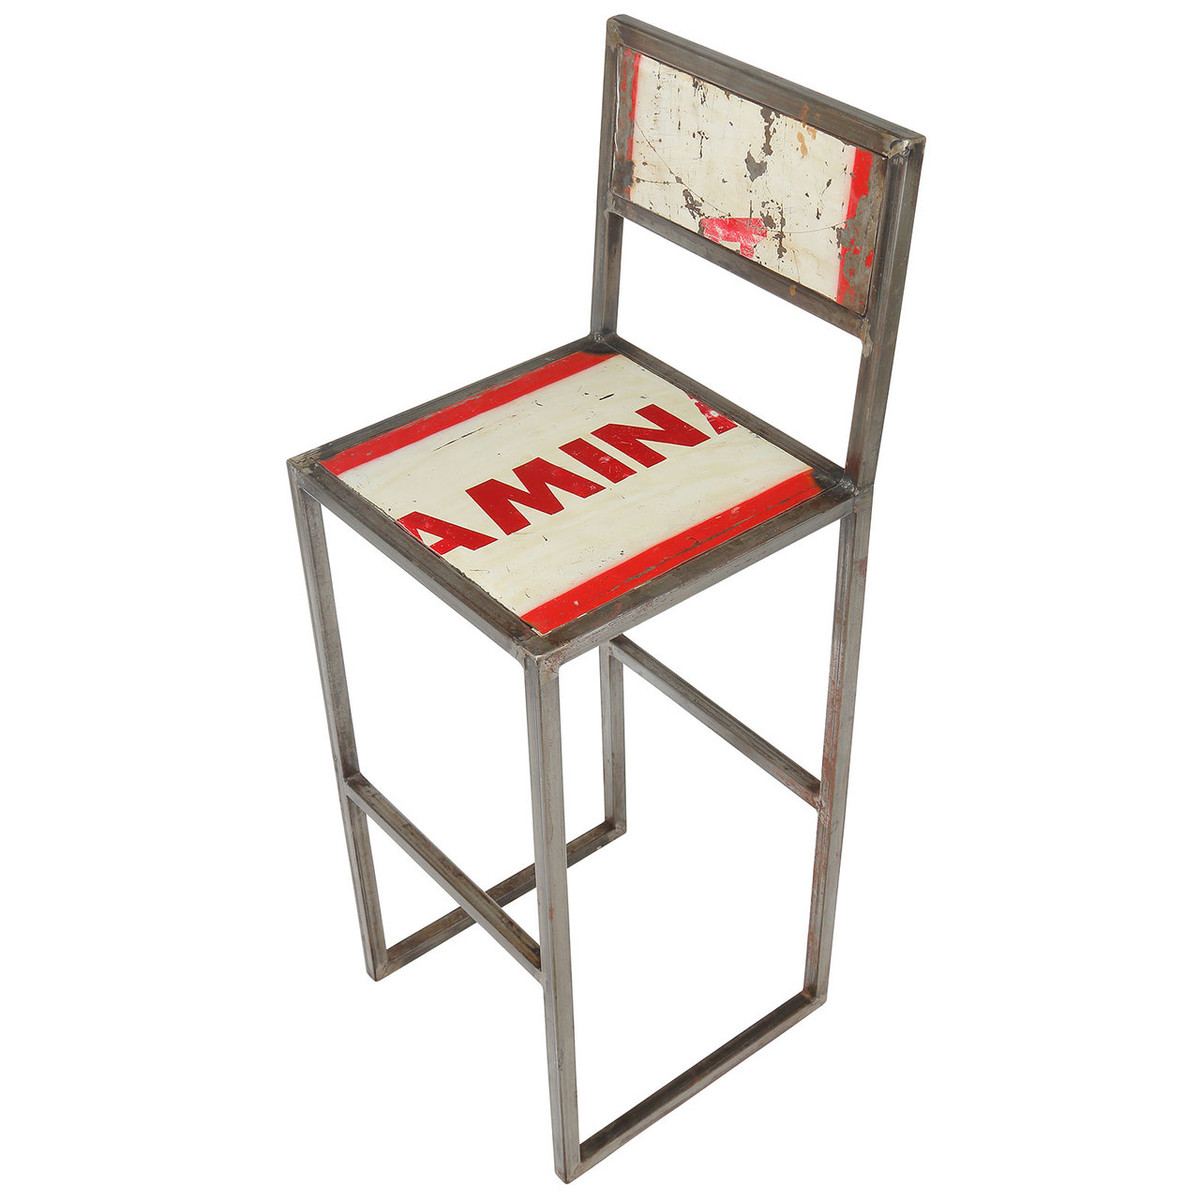 Sensational Refinery Recycled Metal Iron Counter Stool Gamerscity Chair Design For Home Gamerscityorg